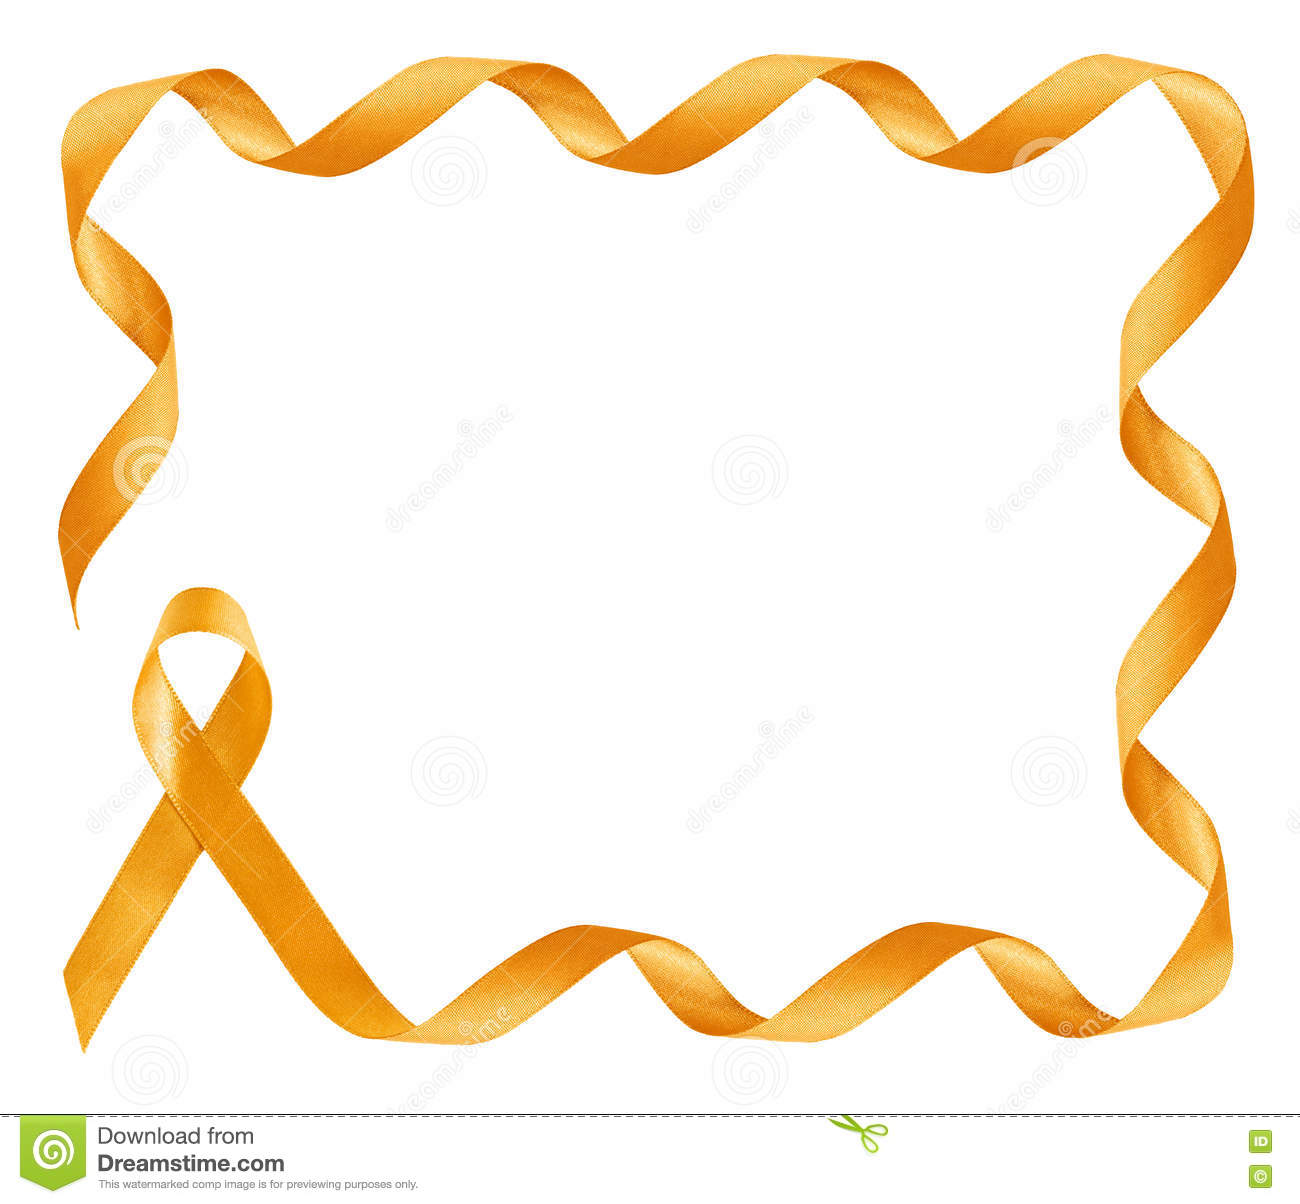 childhood cancer awareness golden ribbon frame stock image Yellow and Pink Cancer Ribbon Gold Cancer Ribbon Vector